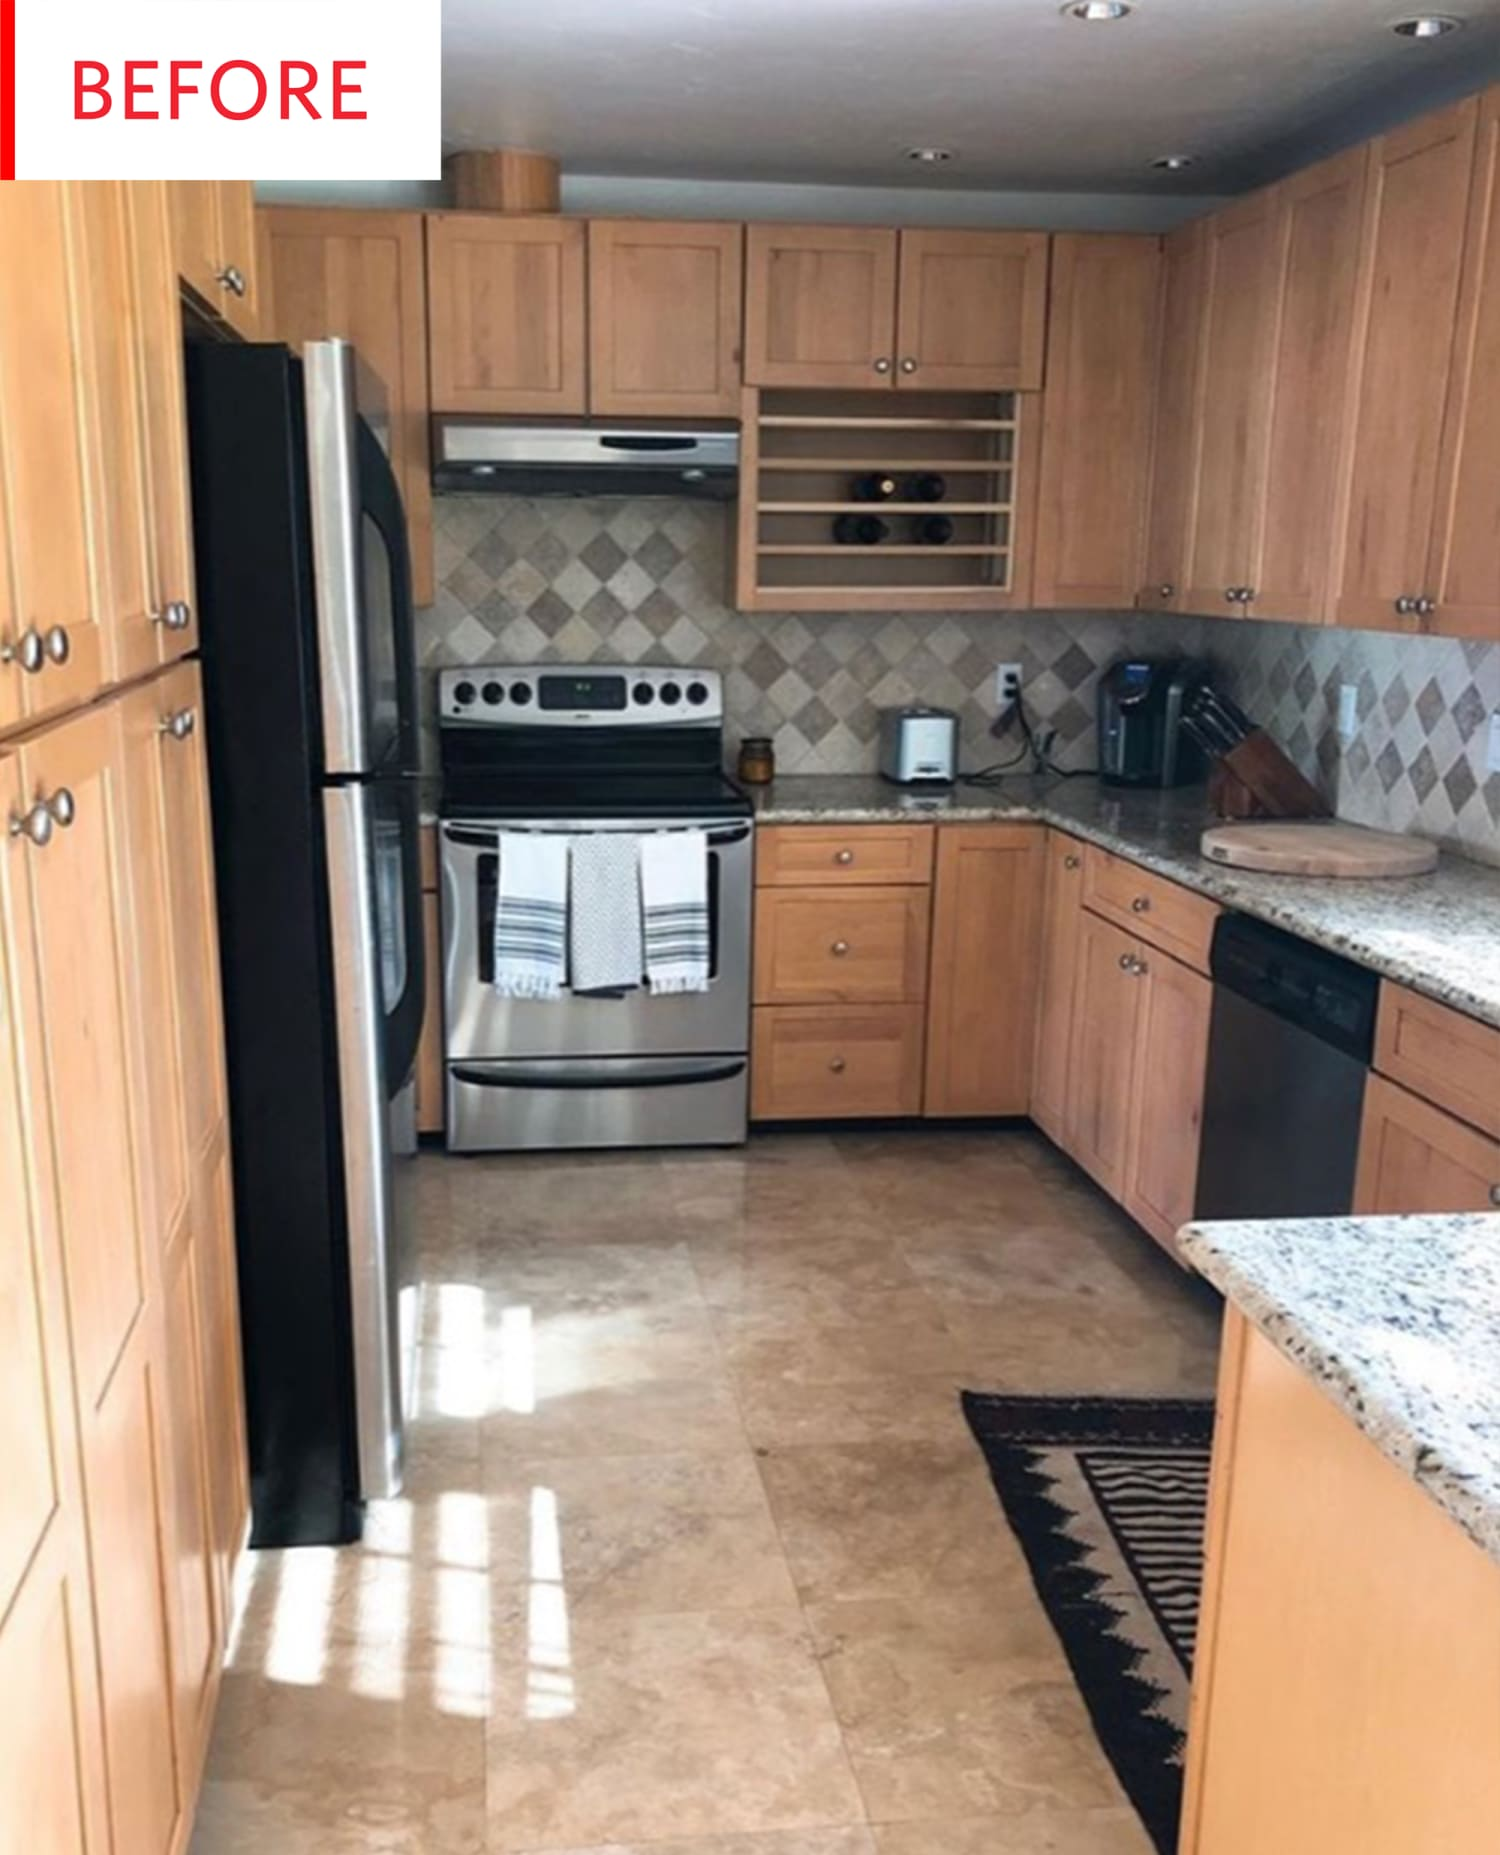 Before and After: This Kitchen Was Terrifically Transformed for Only $900